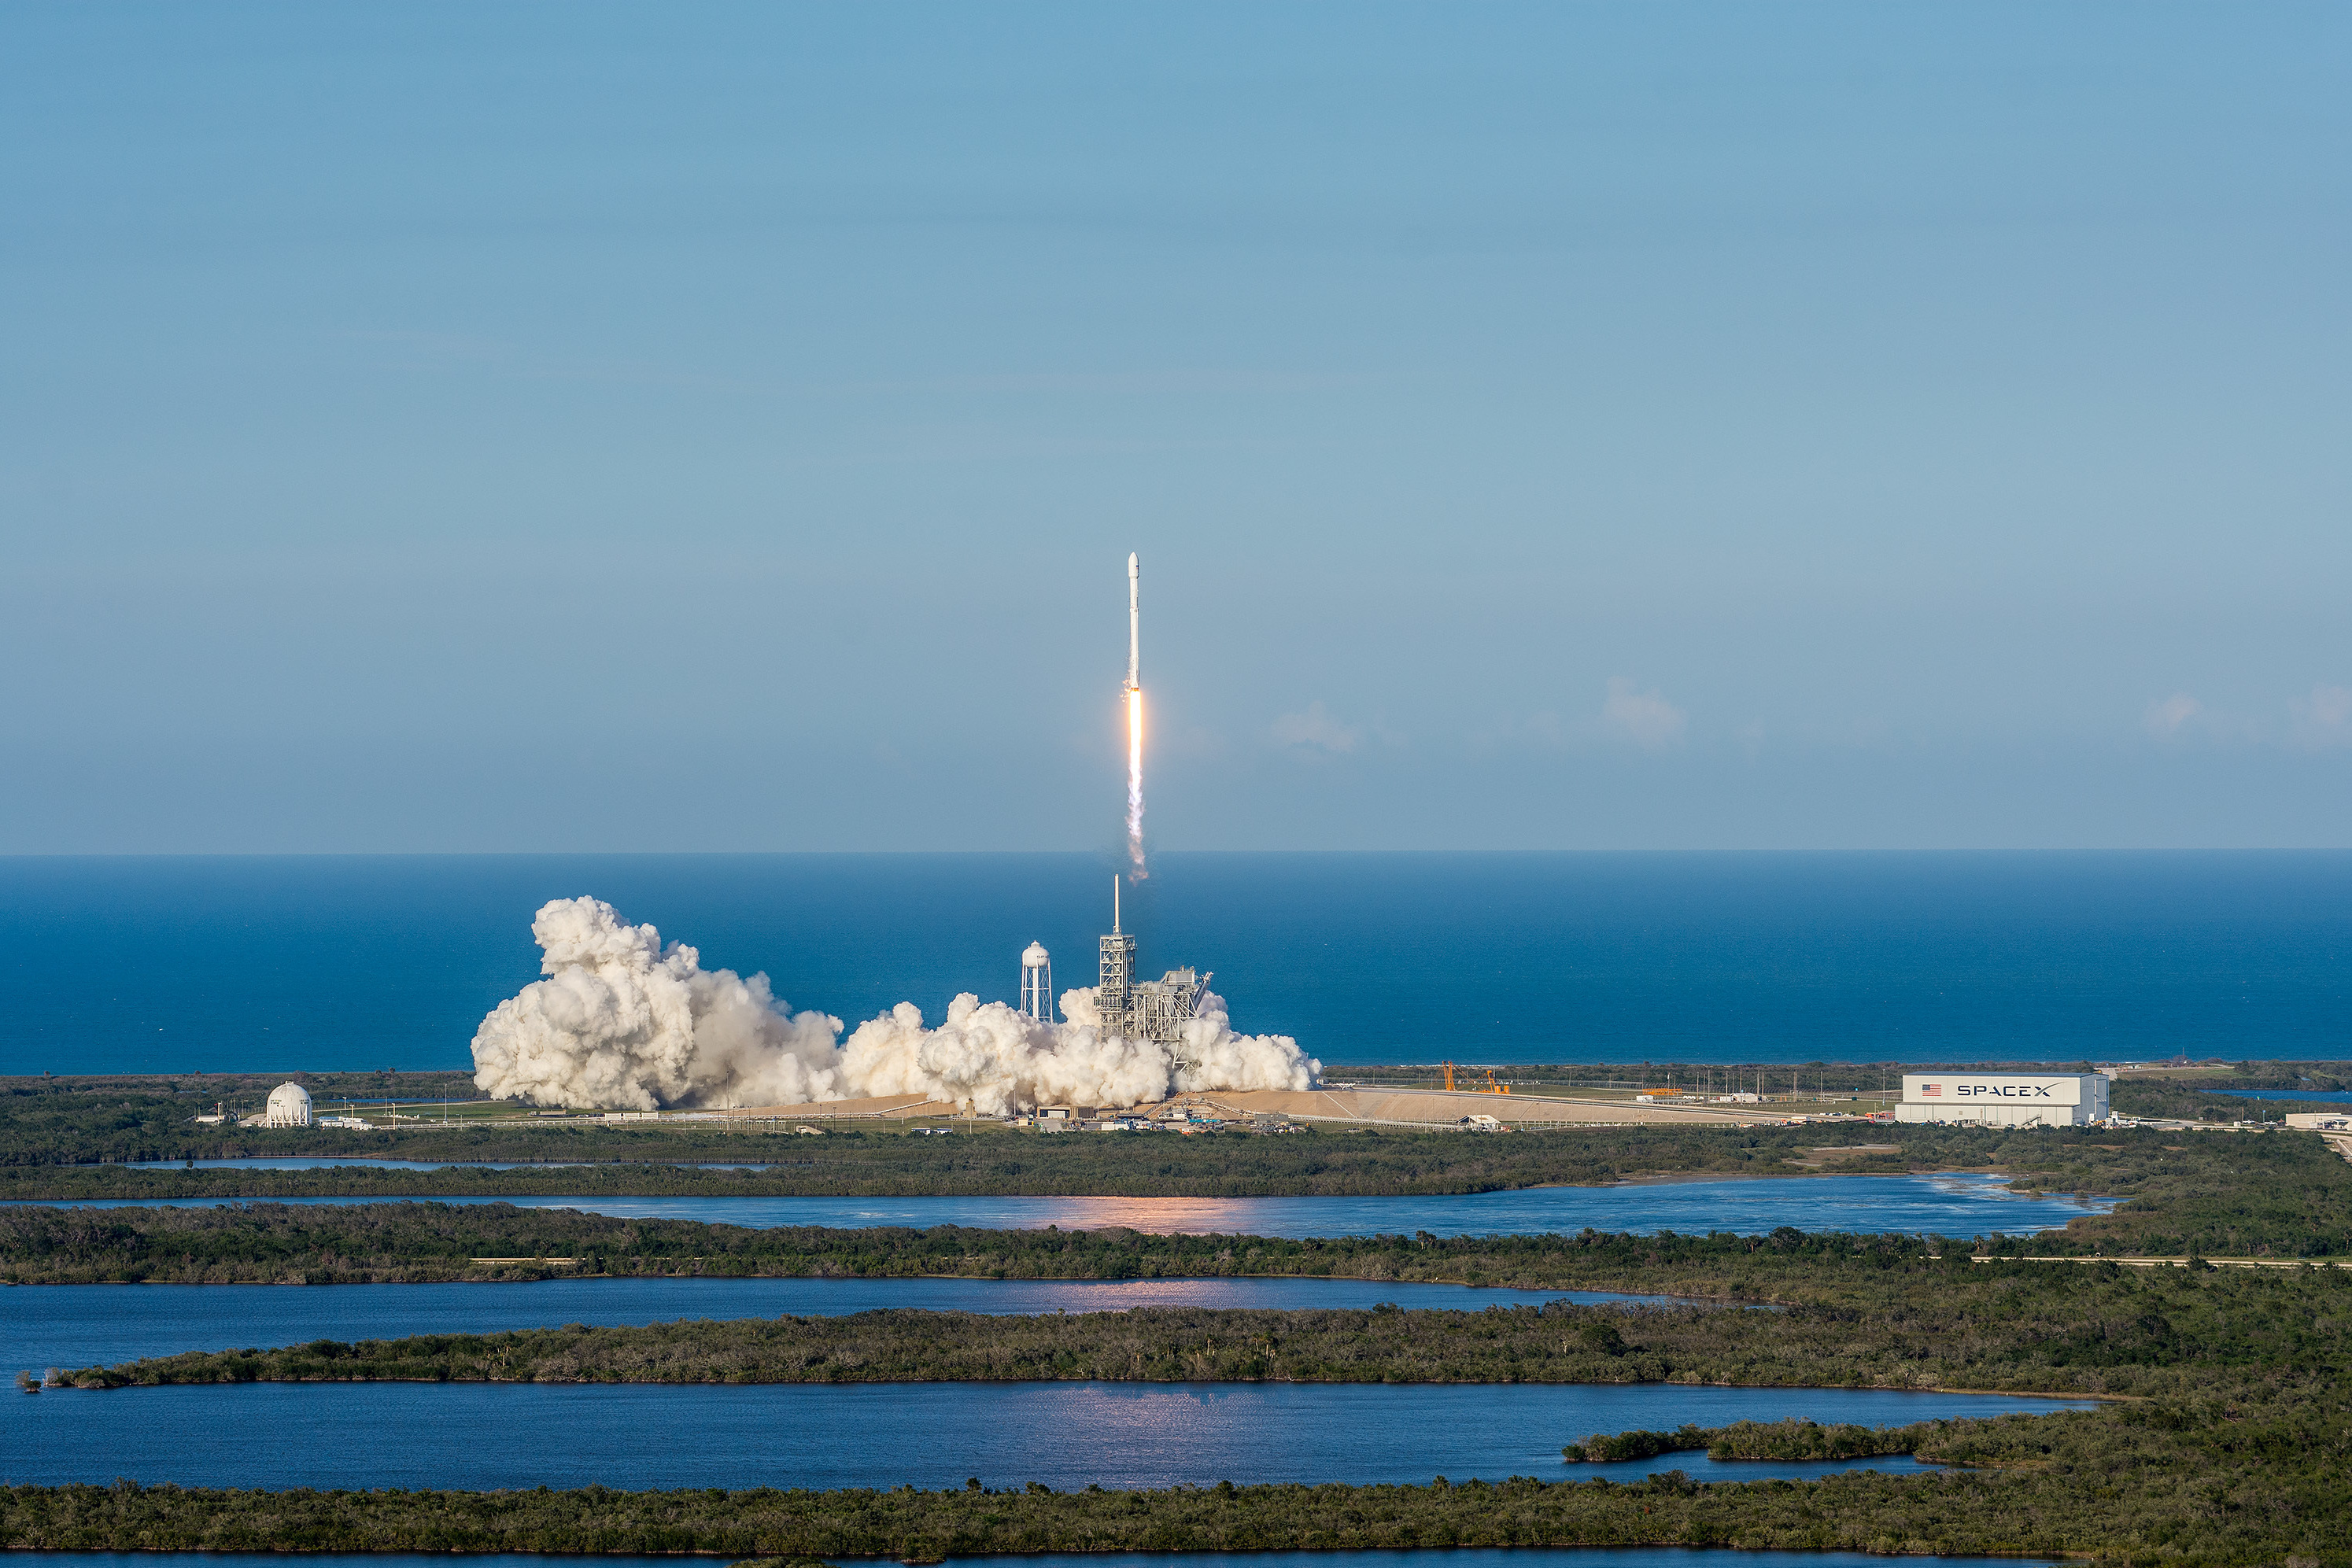 SpaceX launches SES-10 satellite, lands in first reuse of orbital rocket